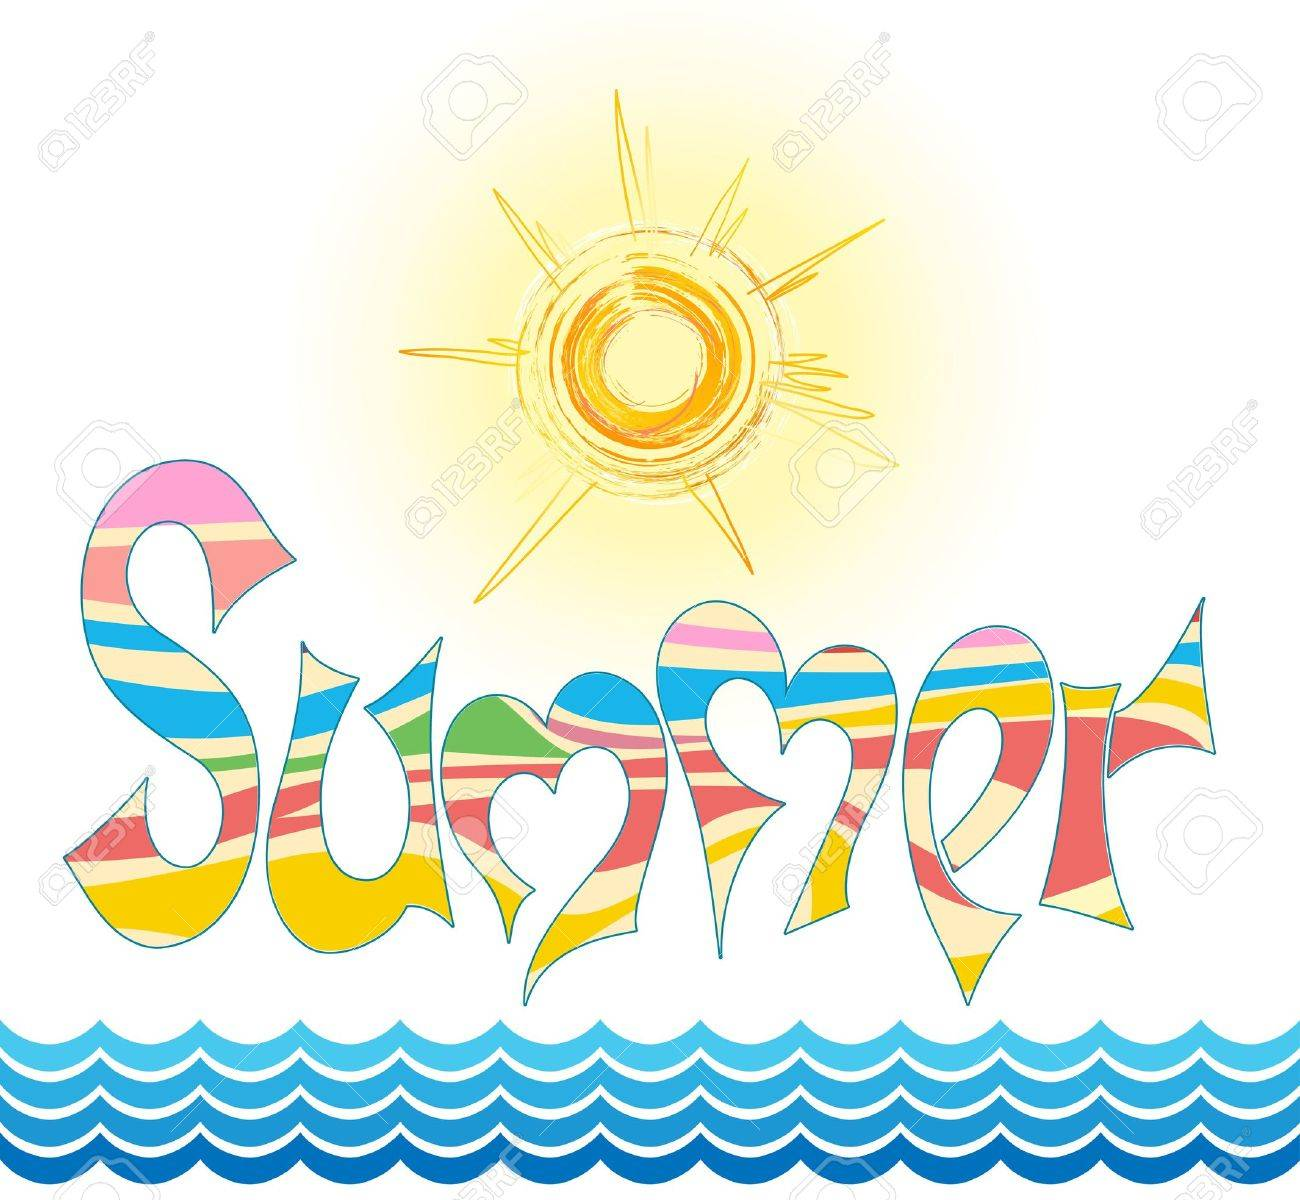 word summer in style graphites, with stylized sun and by sea - 12789036